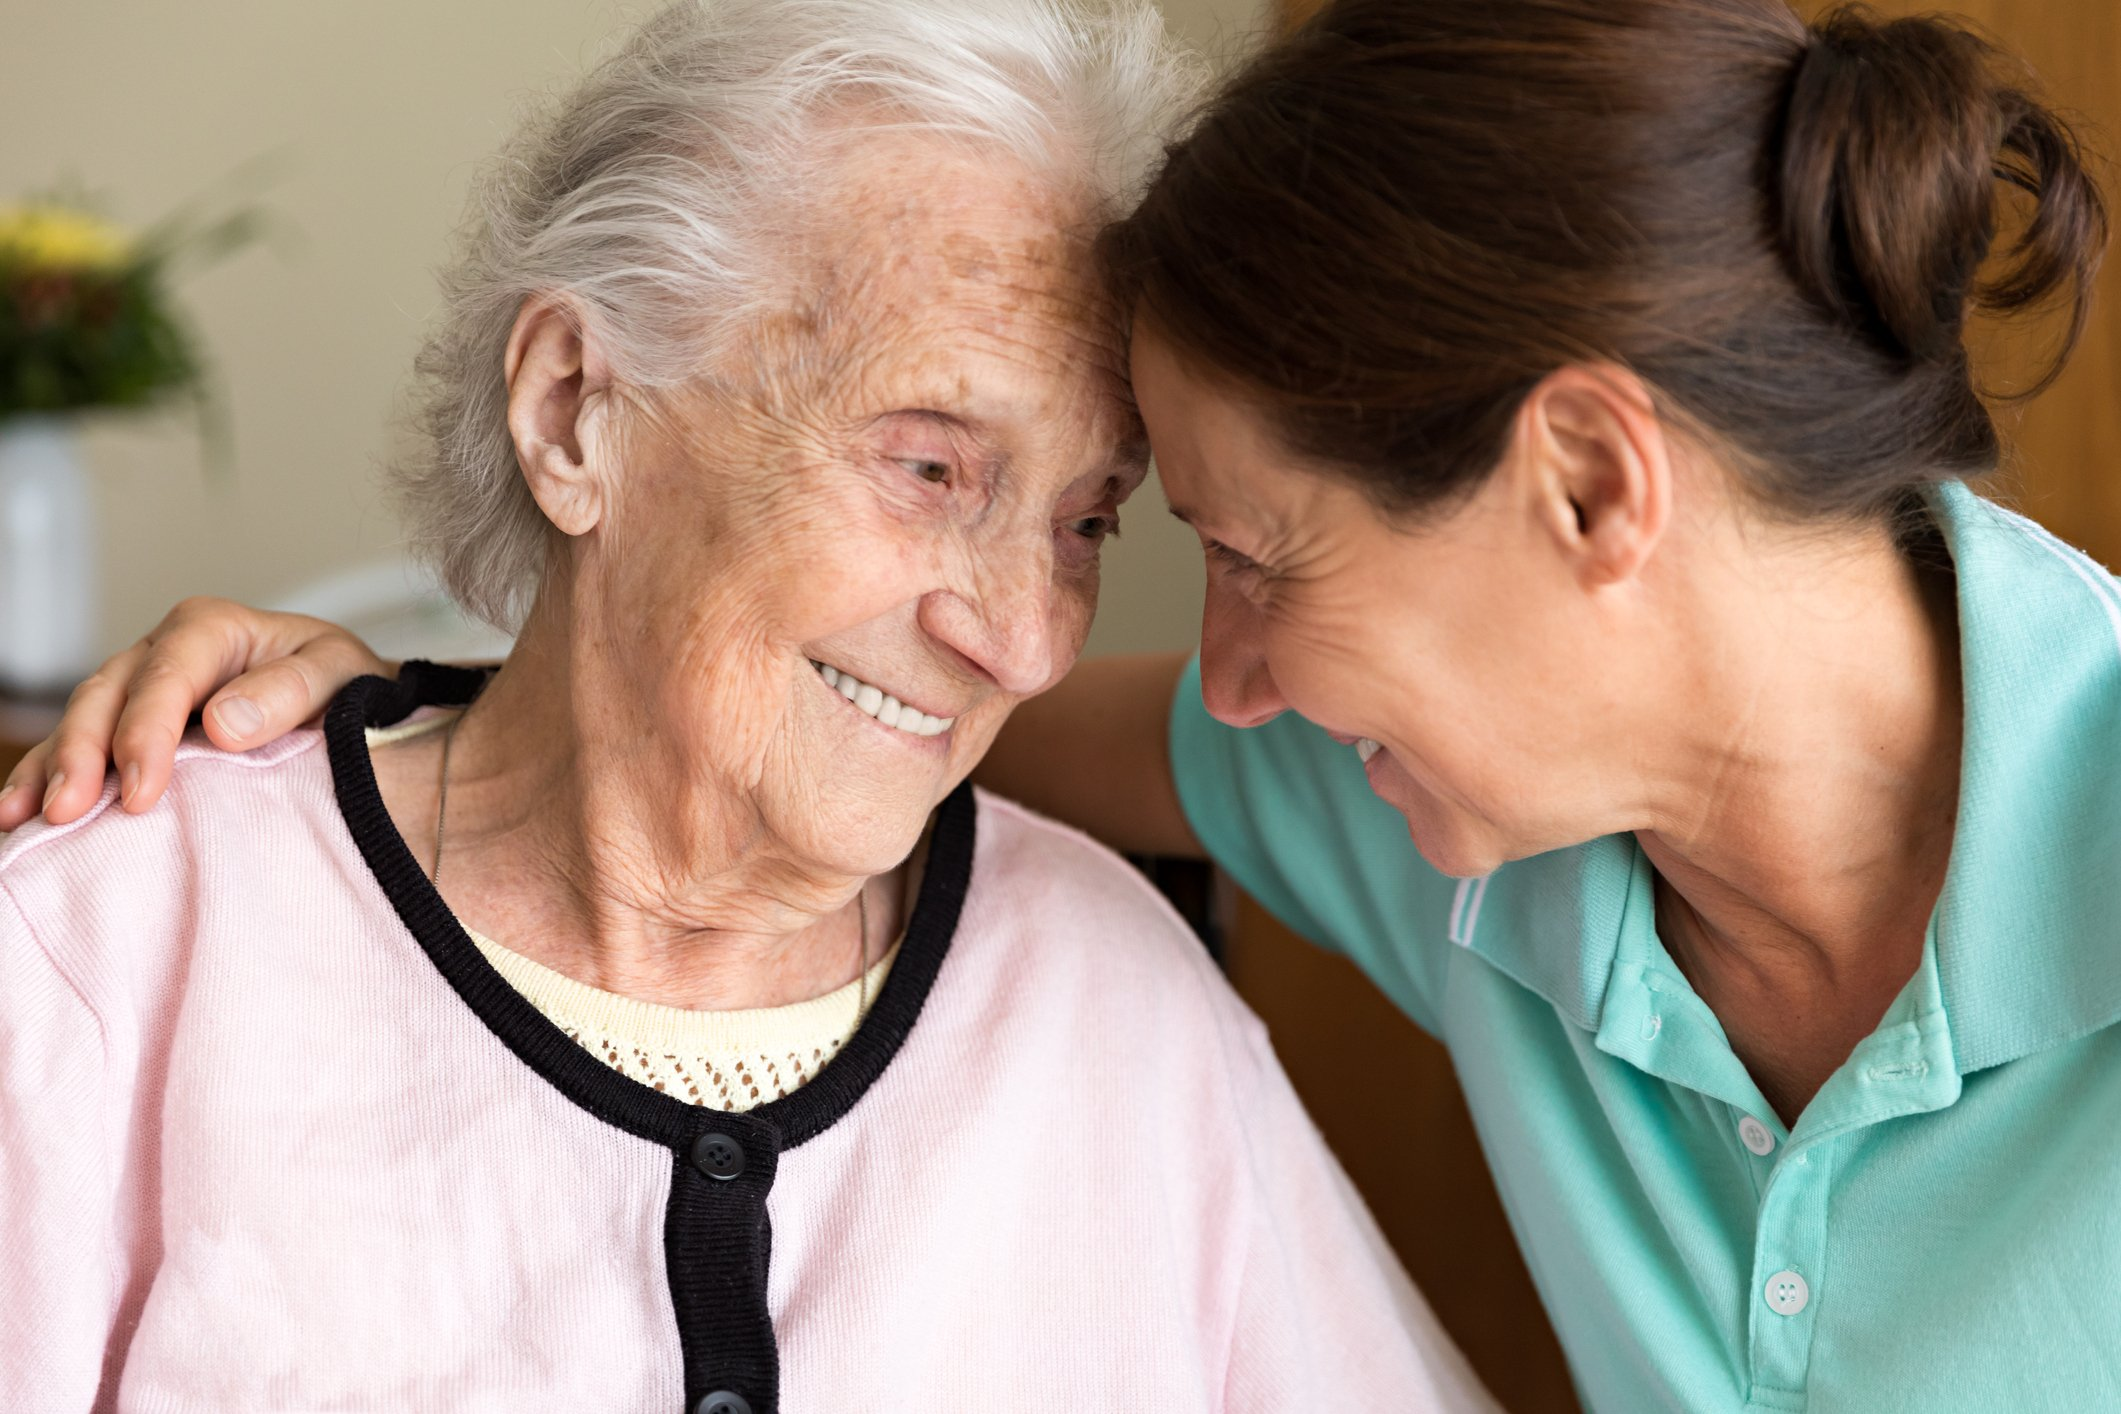 Infographic: 14 Must-Know Statistics About Long-Term Care